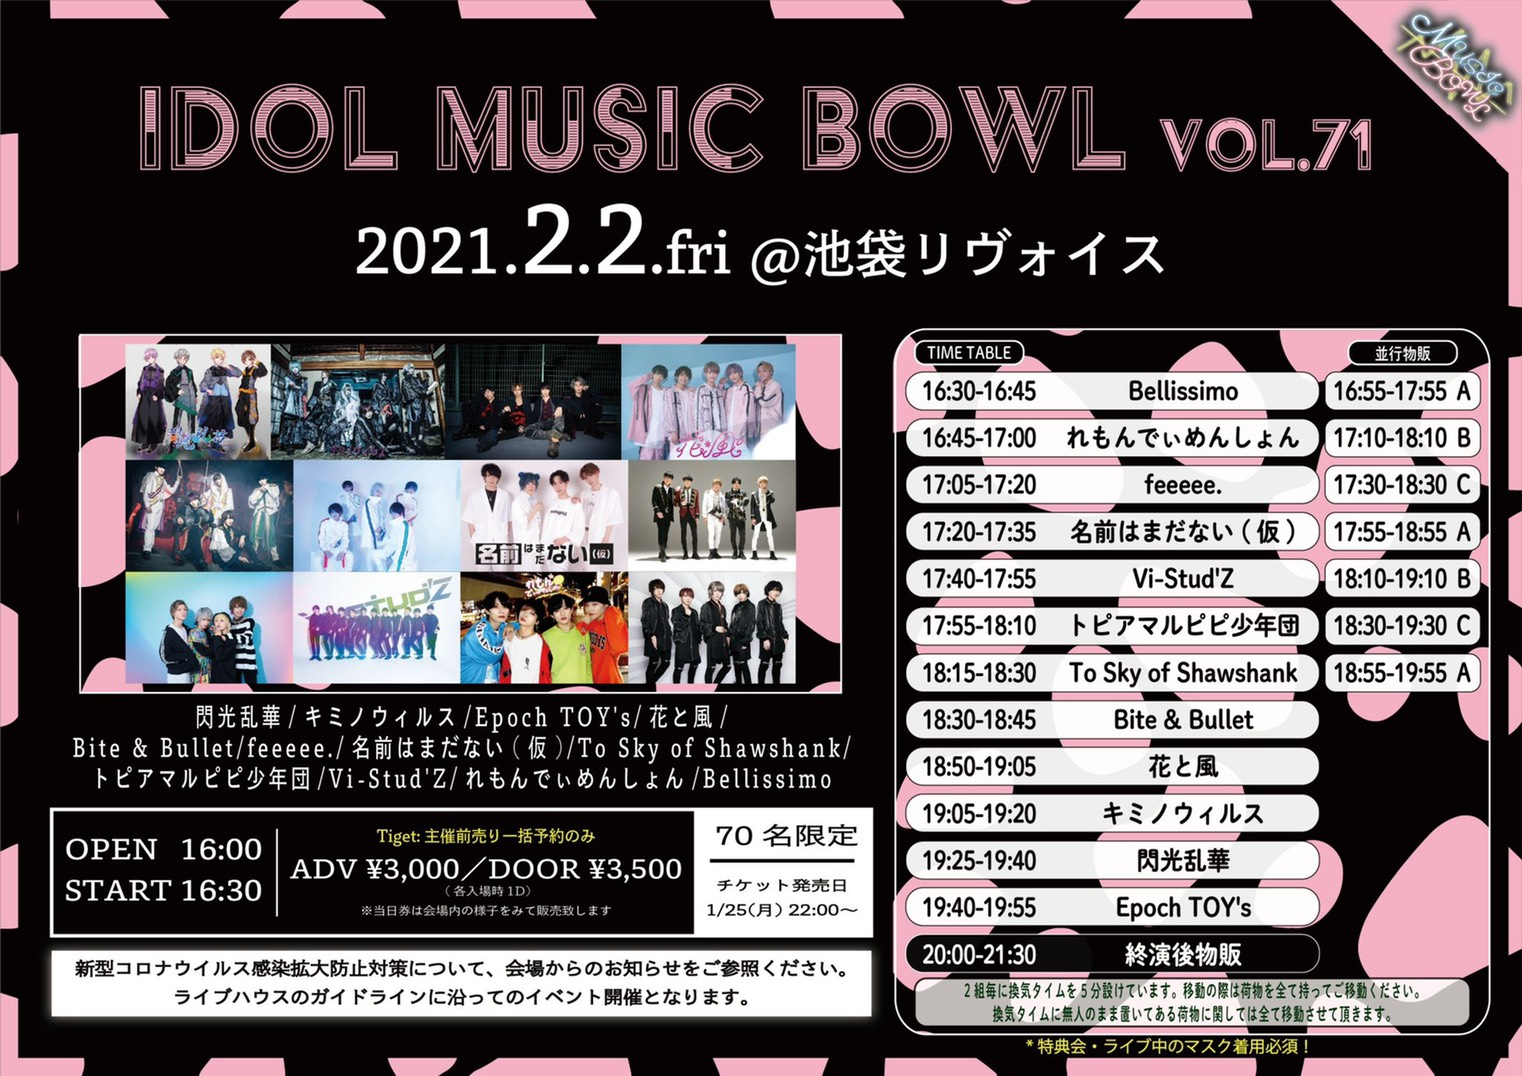 IDOL MUSIC BOWL VOL.71